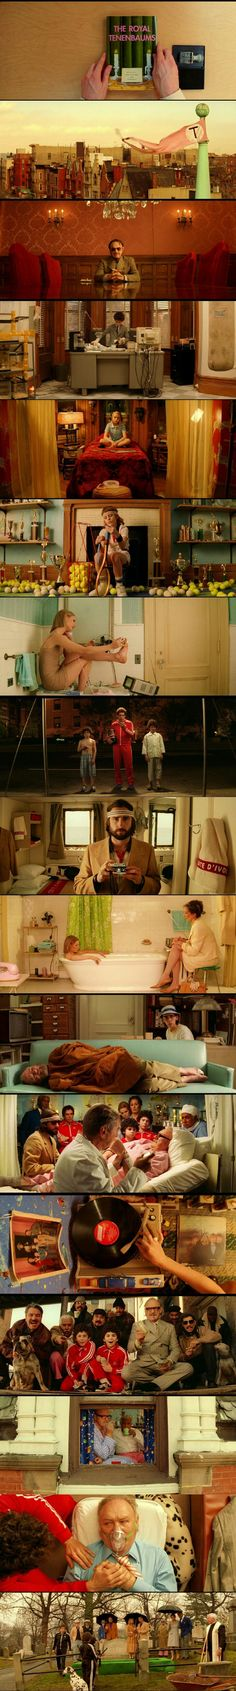 The Royal Tenenbaums(2001). Written and Directed by Wes Anderson.